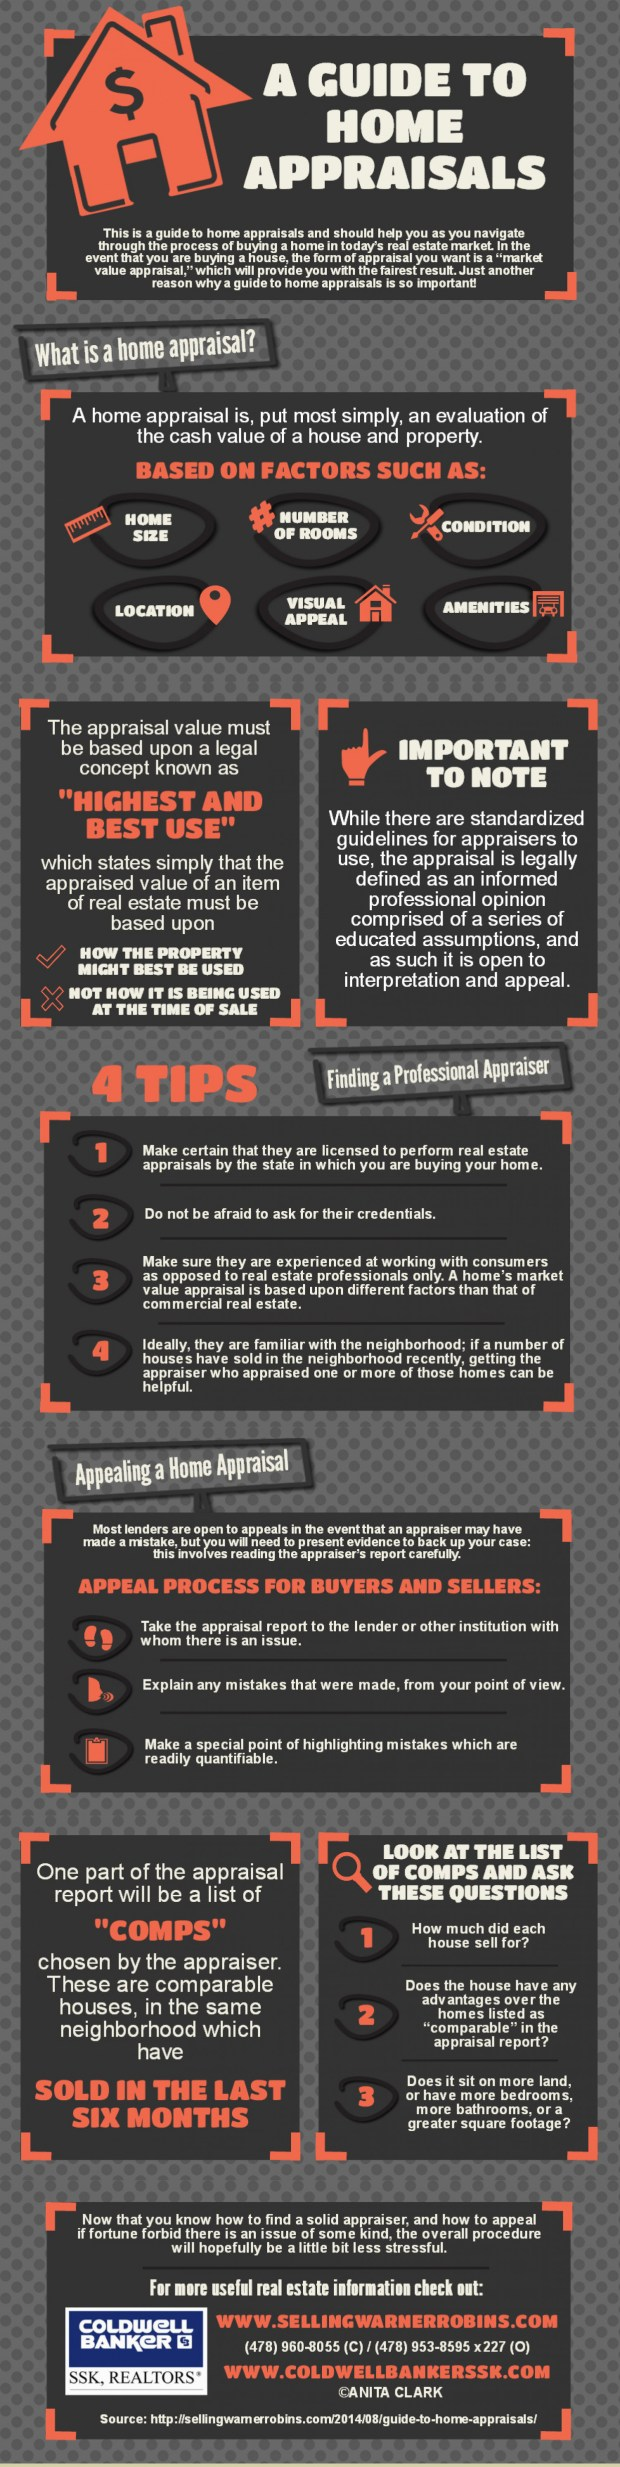 Tips For House Appraisal - Home Design Ideas Home Appraisal Tips on home cleaning tips, home inspection tips, home management tips, home selling tips, home staging tips,